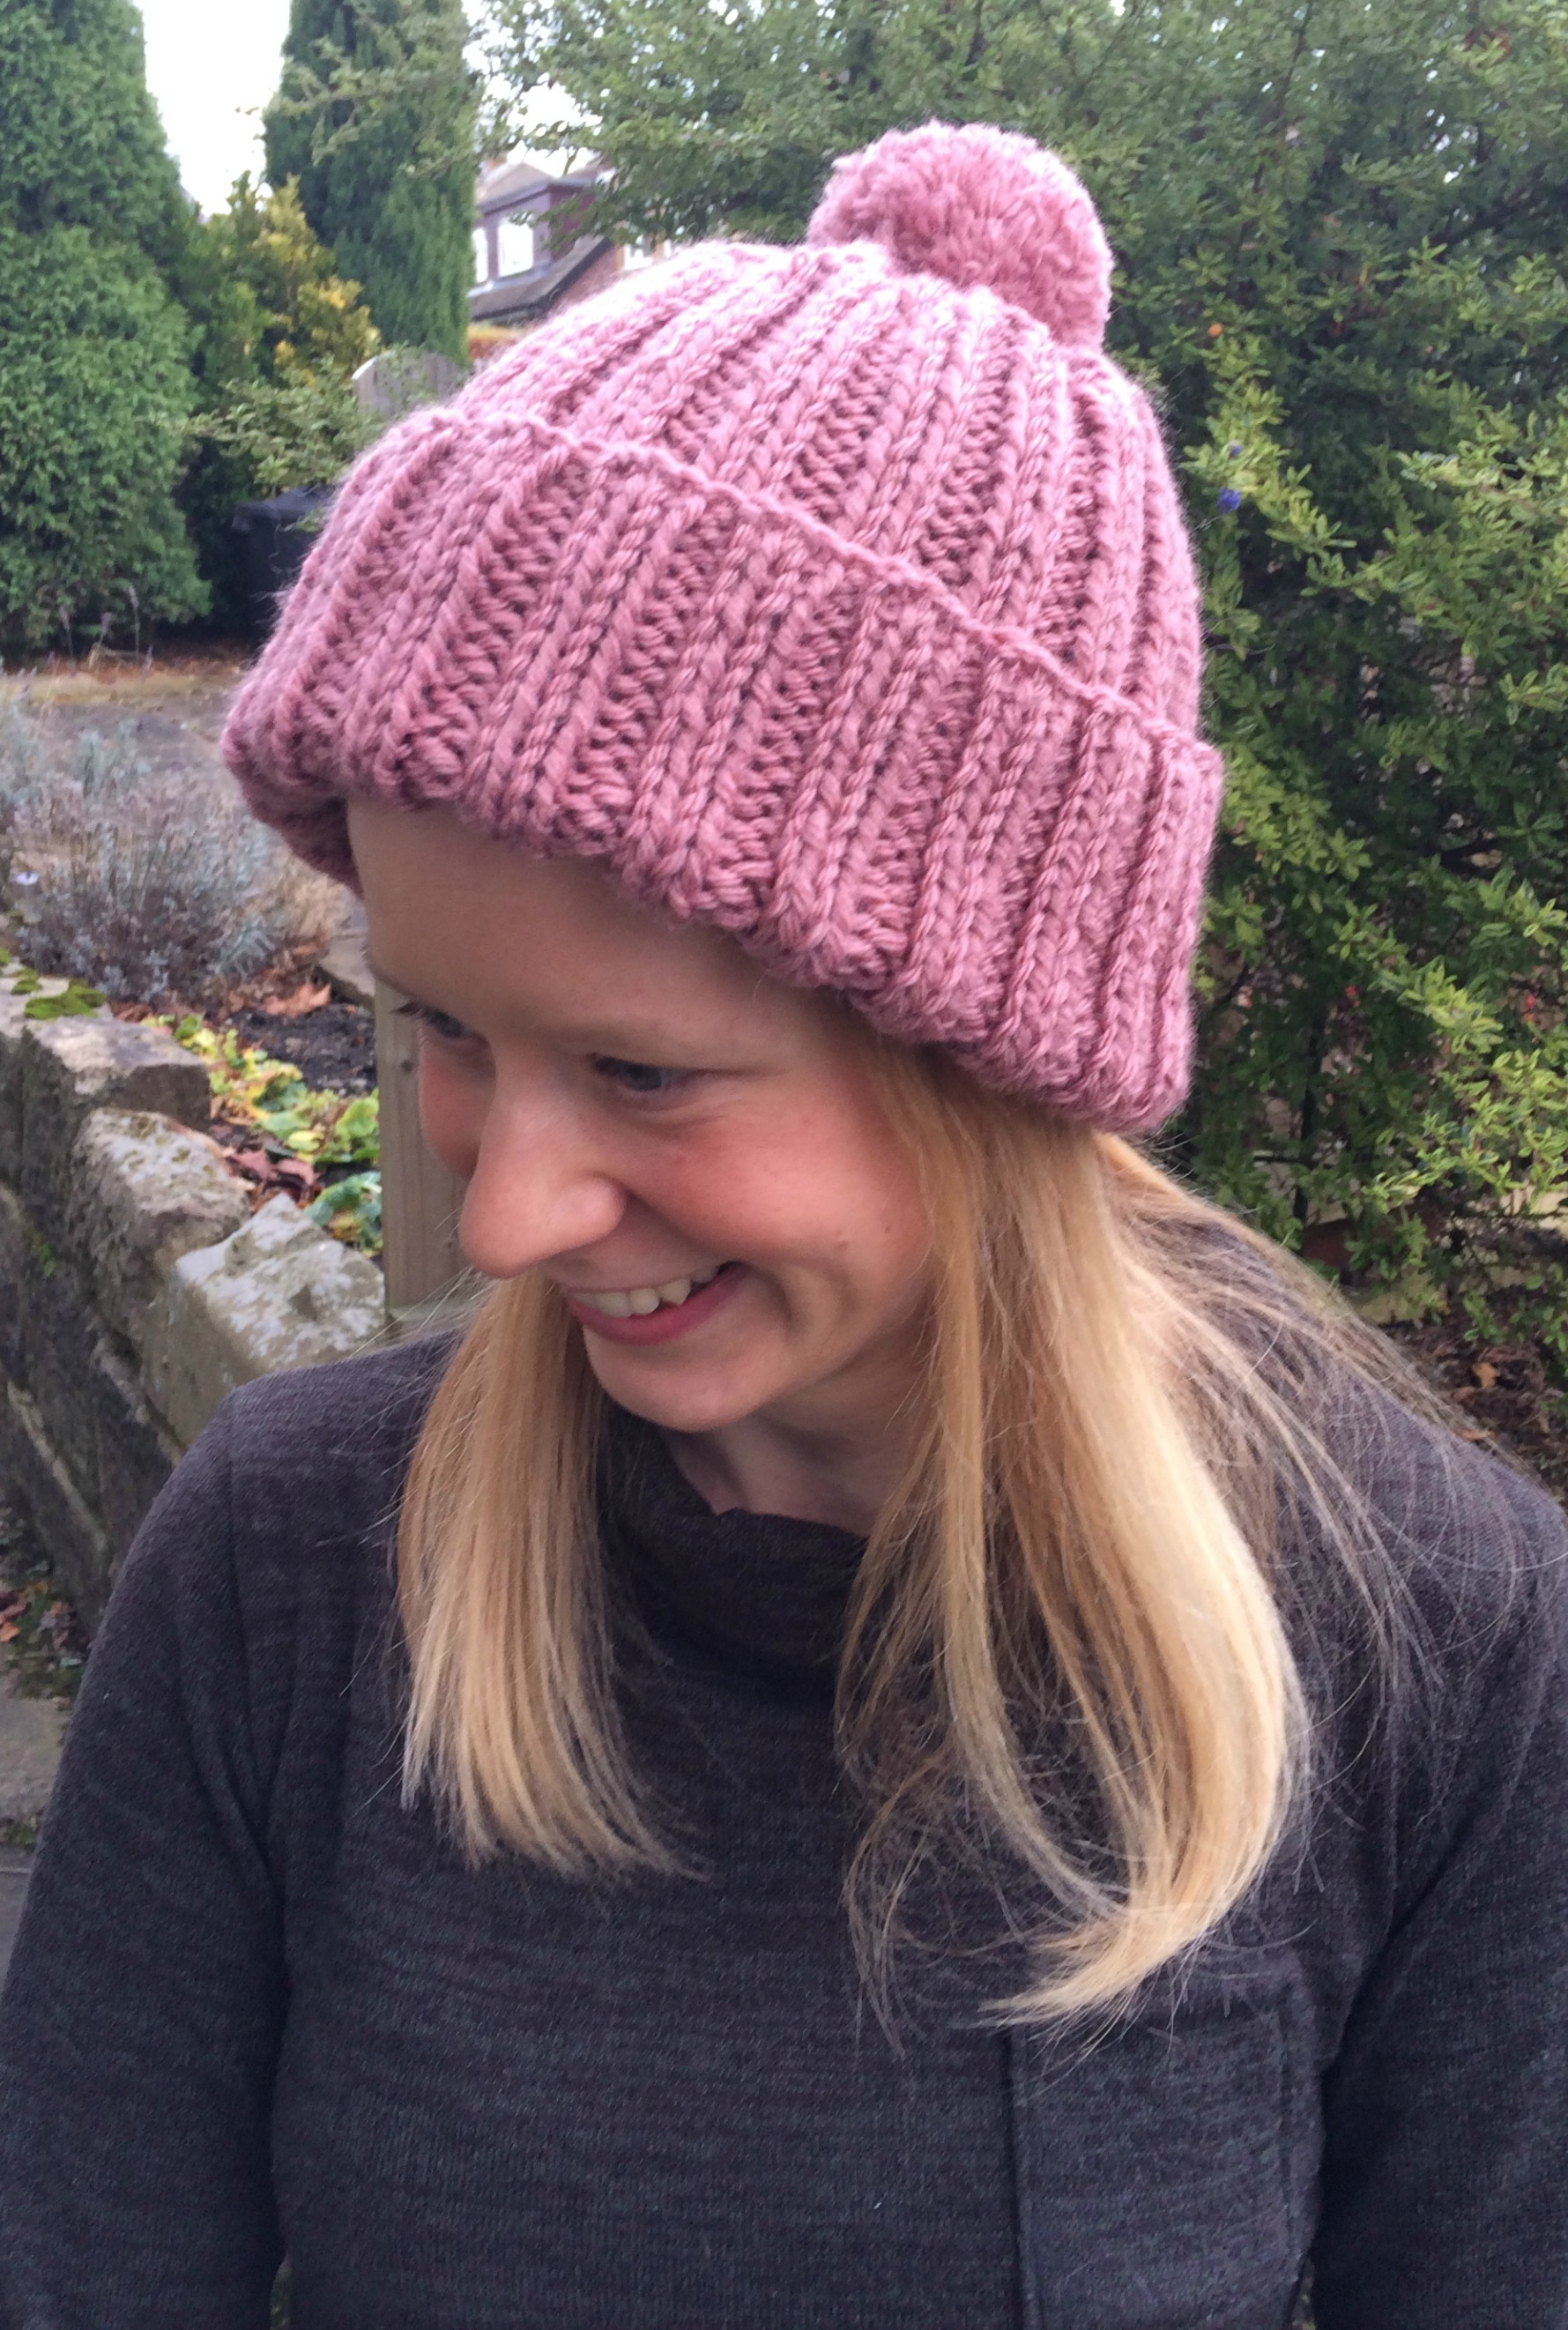 Bobble Hat Knitting Pattern I Knitted A Woolly Hat Free Knitting Pattern Sew Sensational